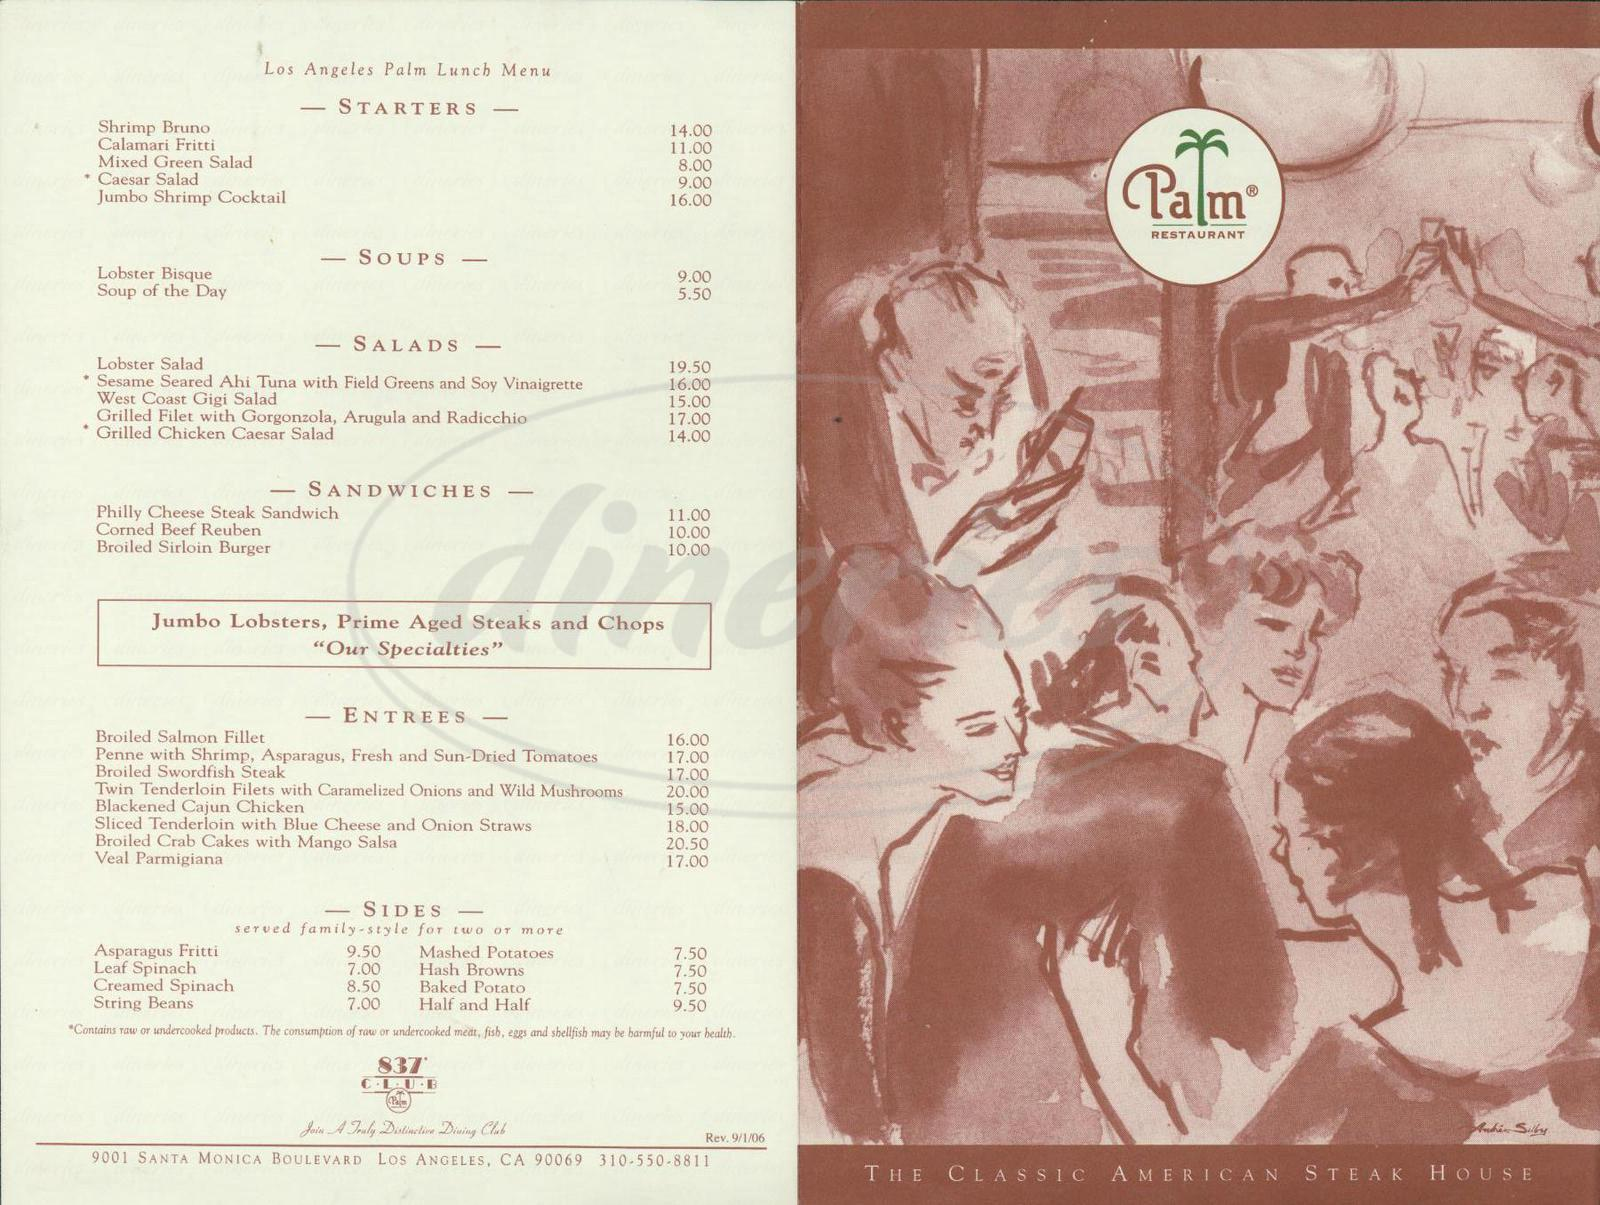 menu for The Palm Restaurant